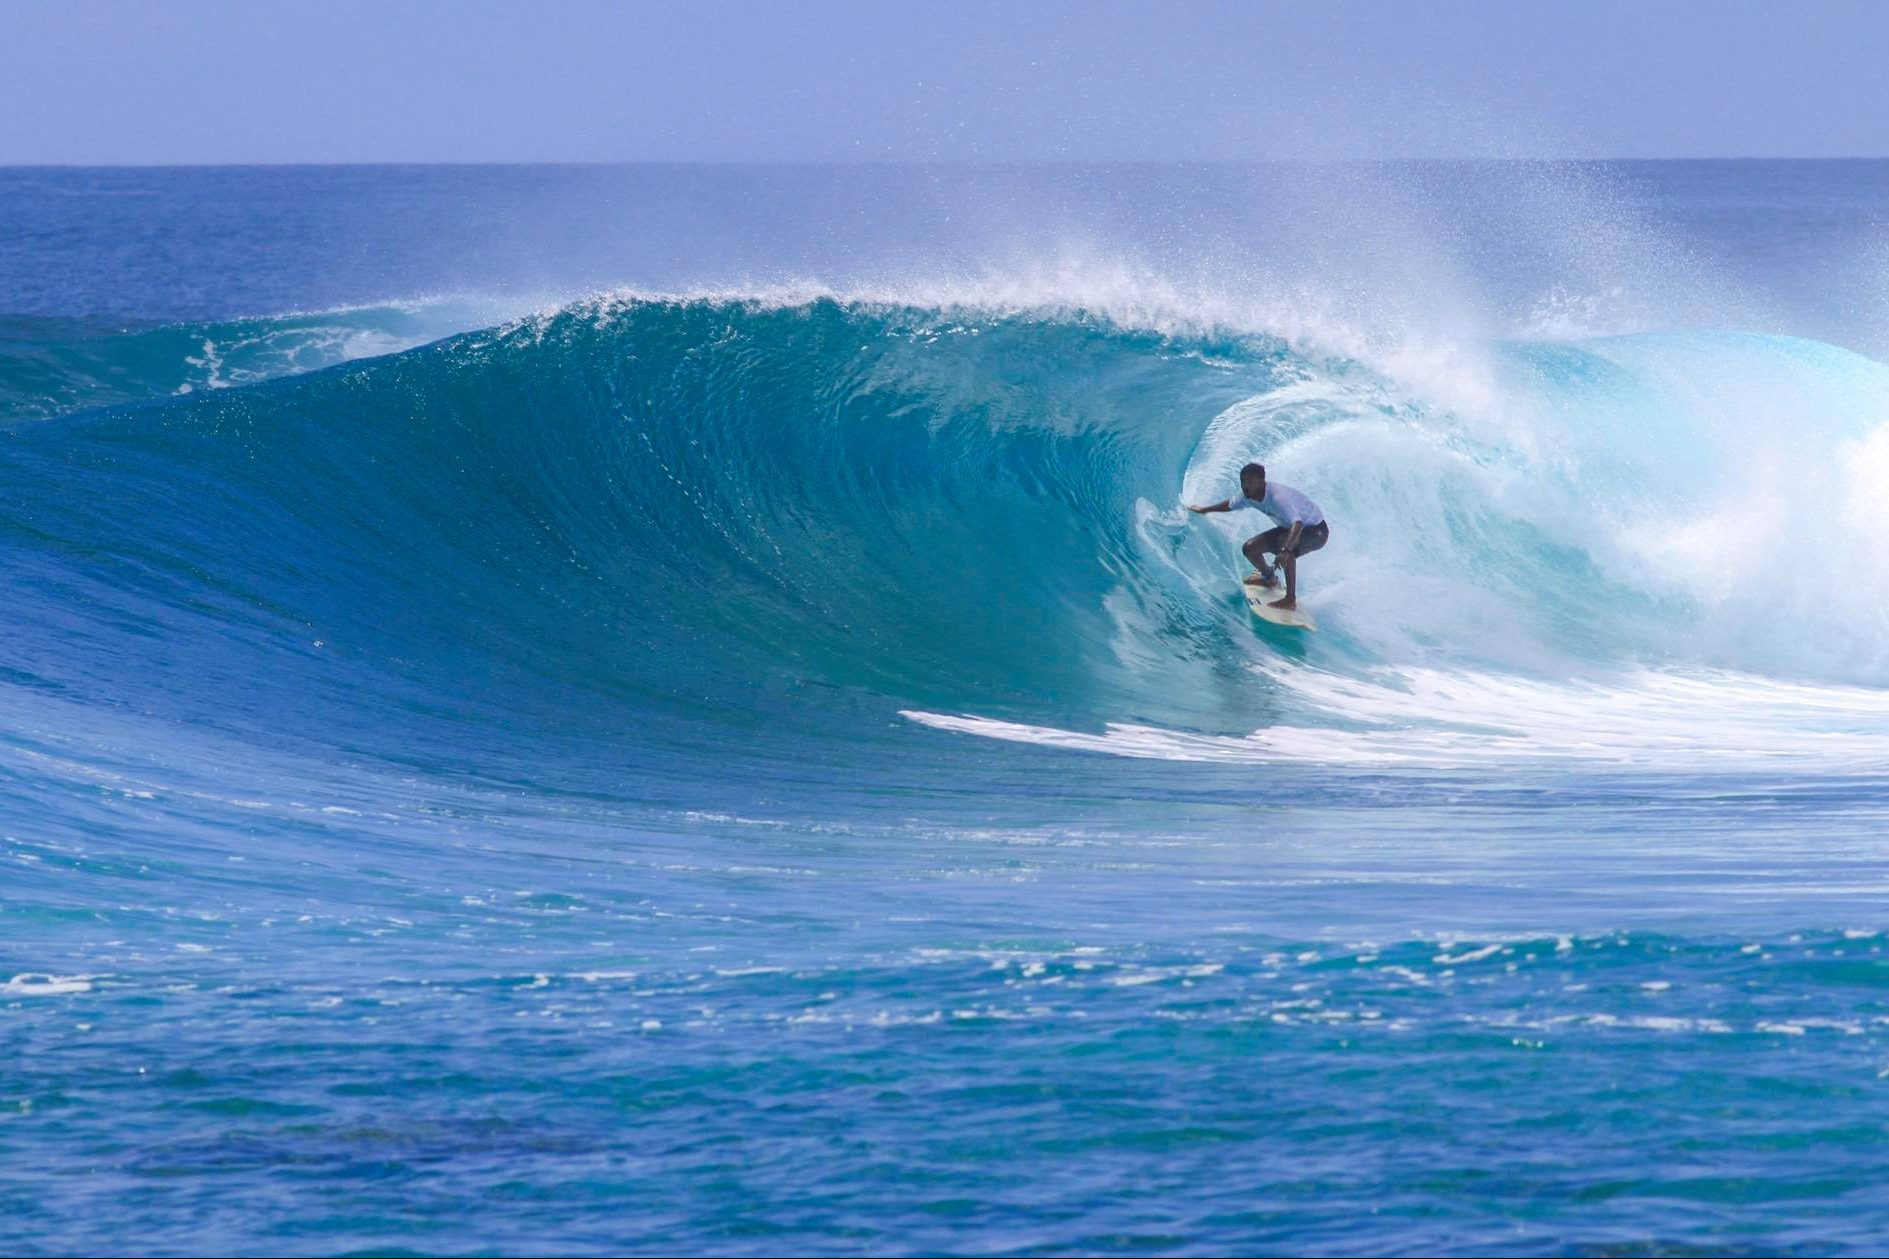 Kandooma perfection on August 30. Photo - Andy Potts C/O The Perfect Wave